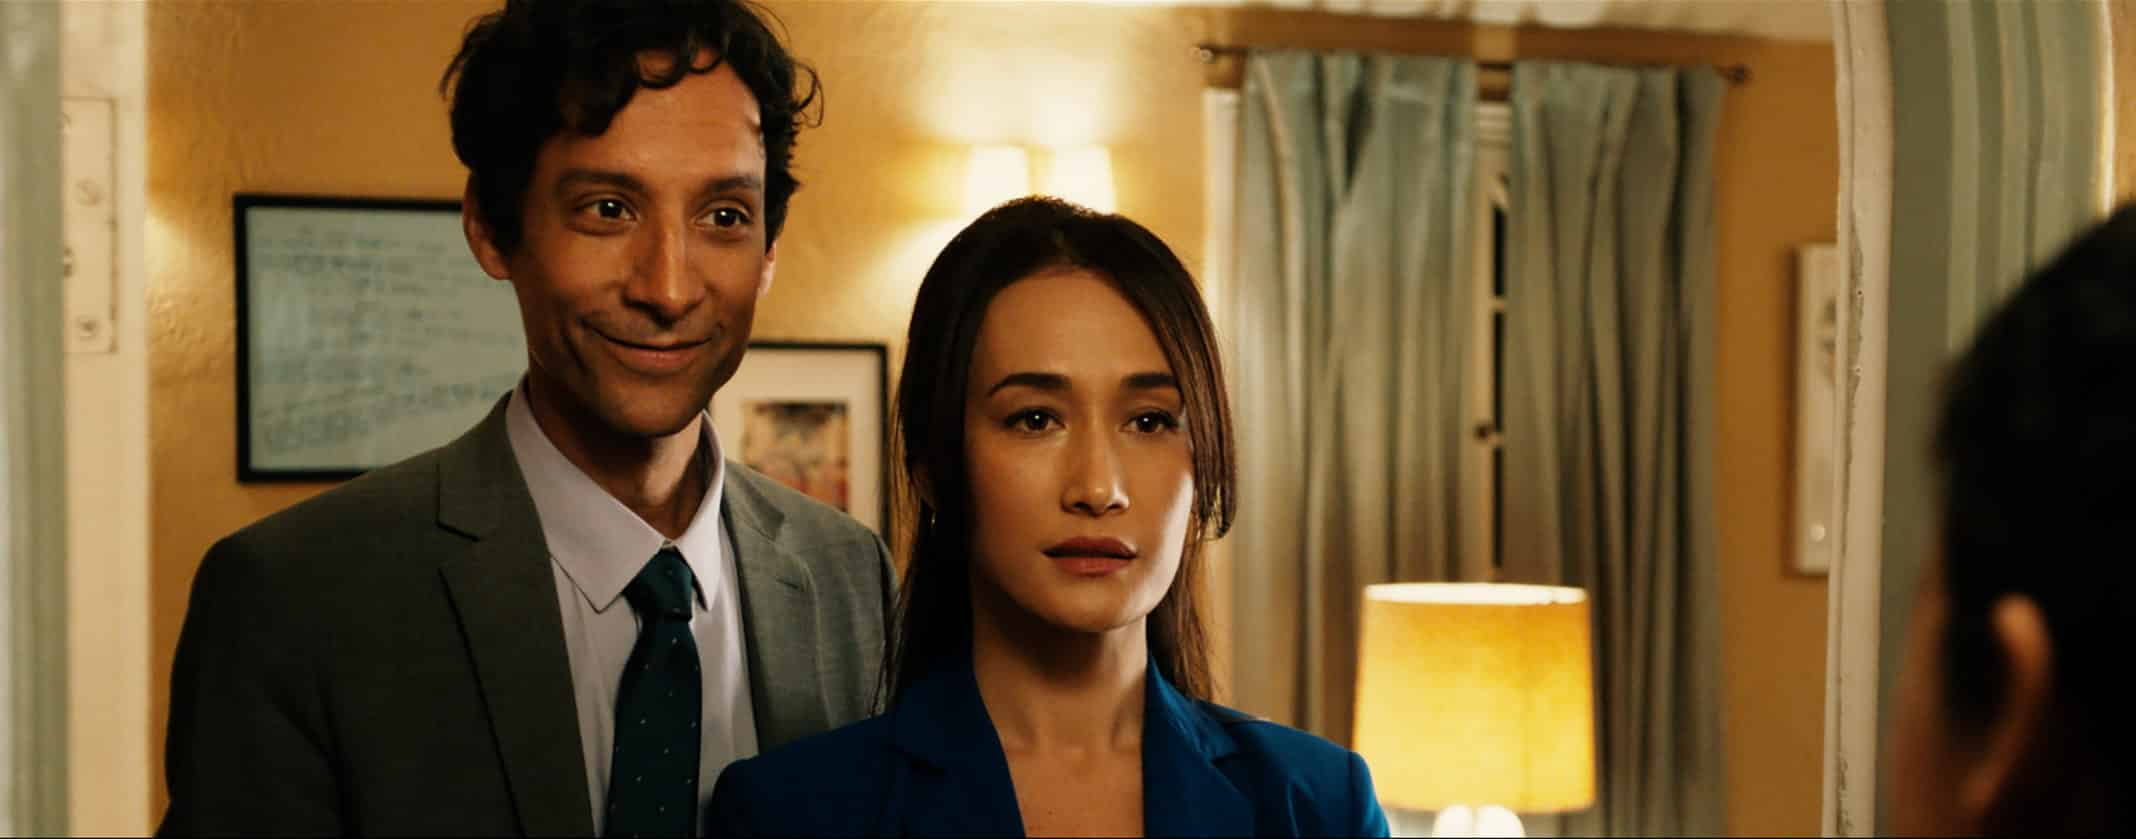 Brett (Danny Pudi) and Sarah (Maggie Q) showing us how opposite they are.